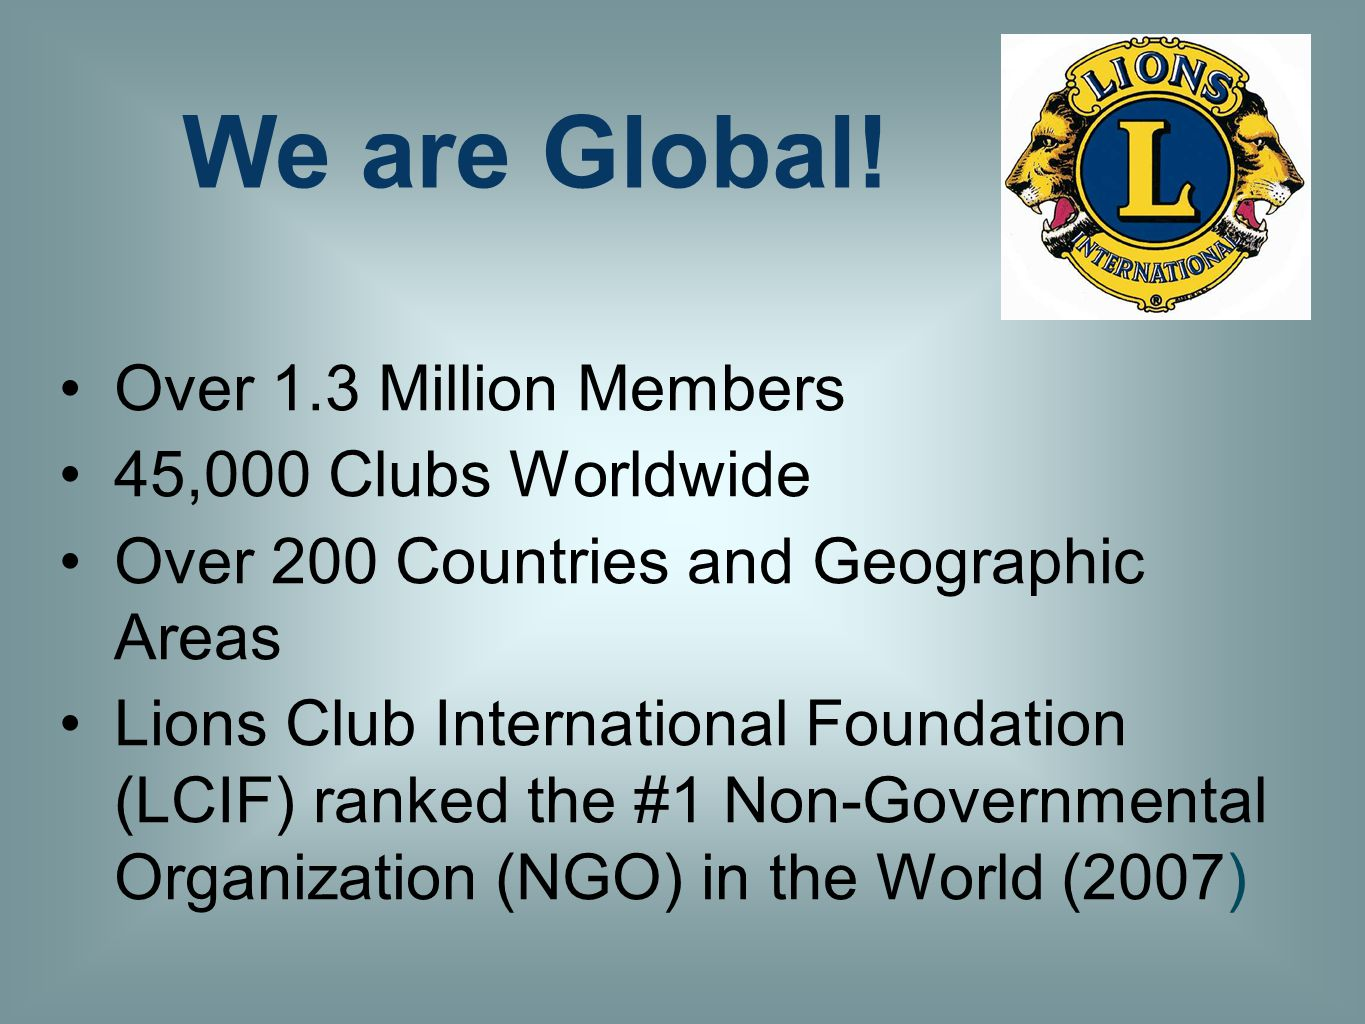 Over 1.3 Million Members 45,000 Clubs Worldwide Over 200 Countries and Geographic Areas Lions Club International Foundation (LCIF) ranked the #1 Non-Governmental Organization (NGO) in the World (2007) We are Global!